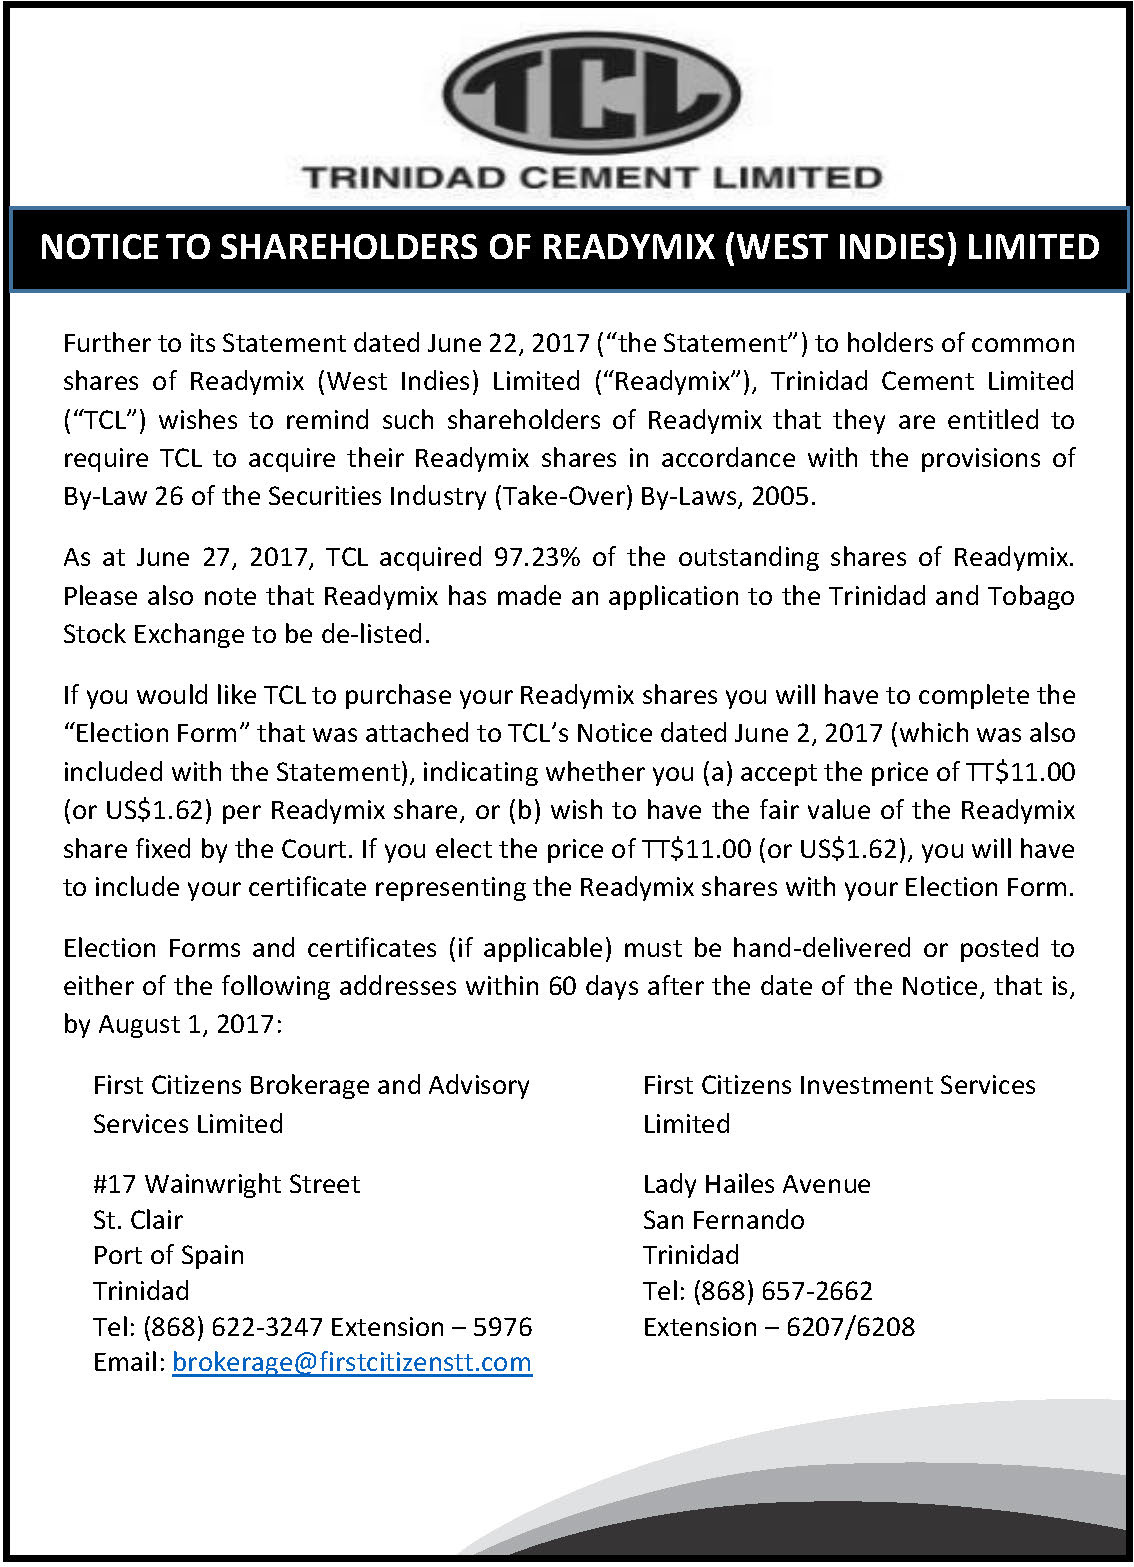 7 RML Delisting and Shares Selling Option - July 11 2017